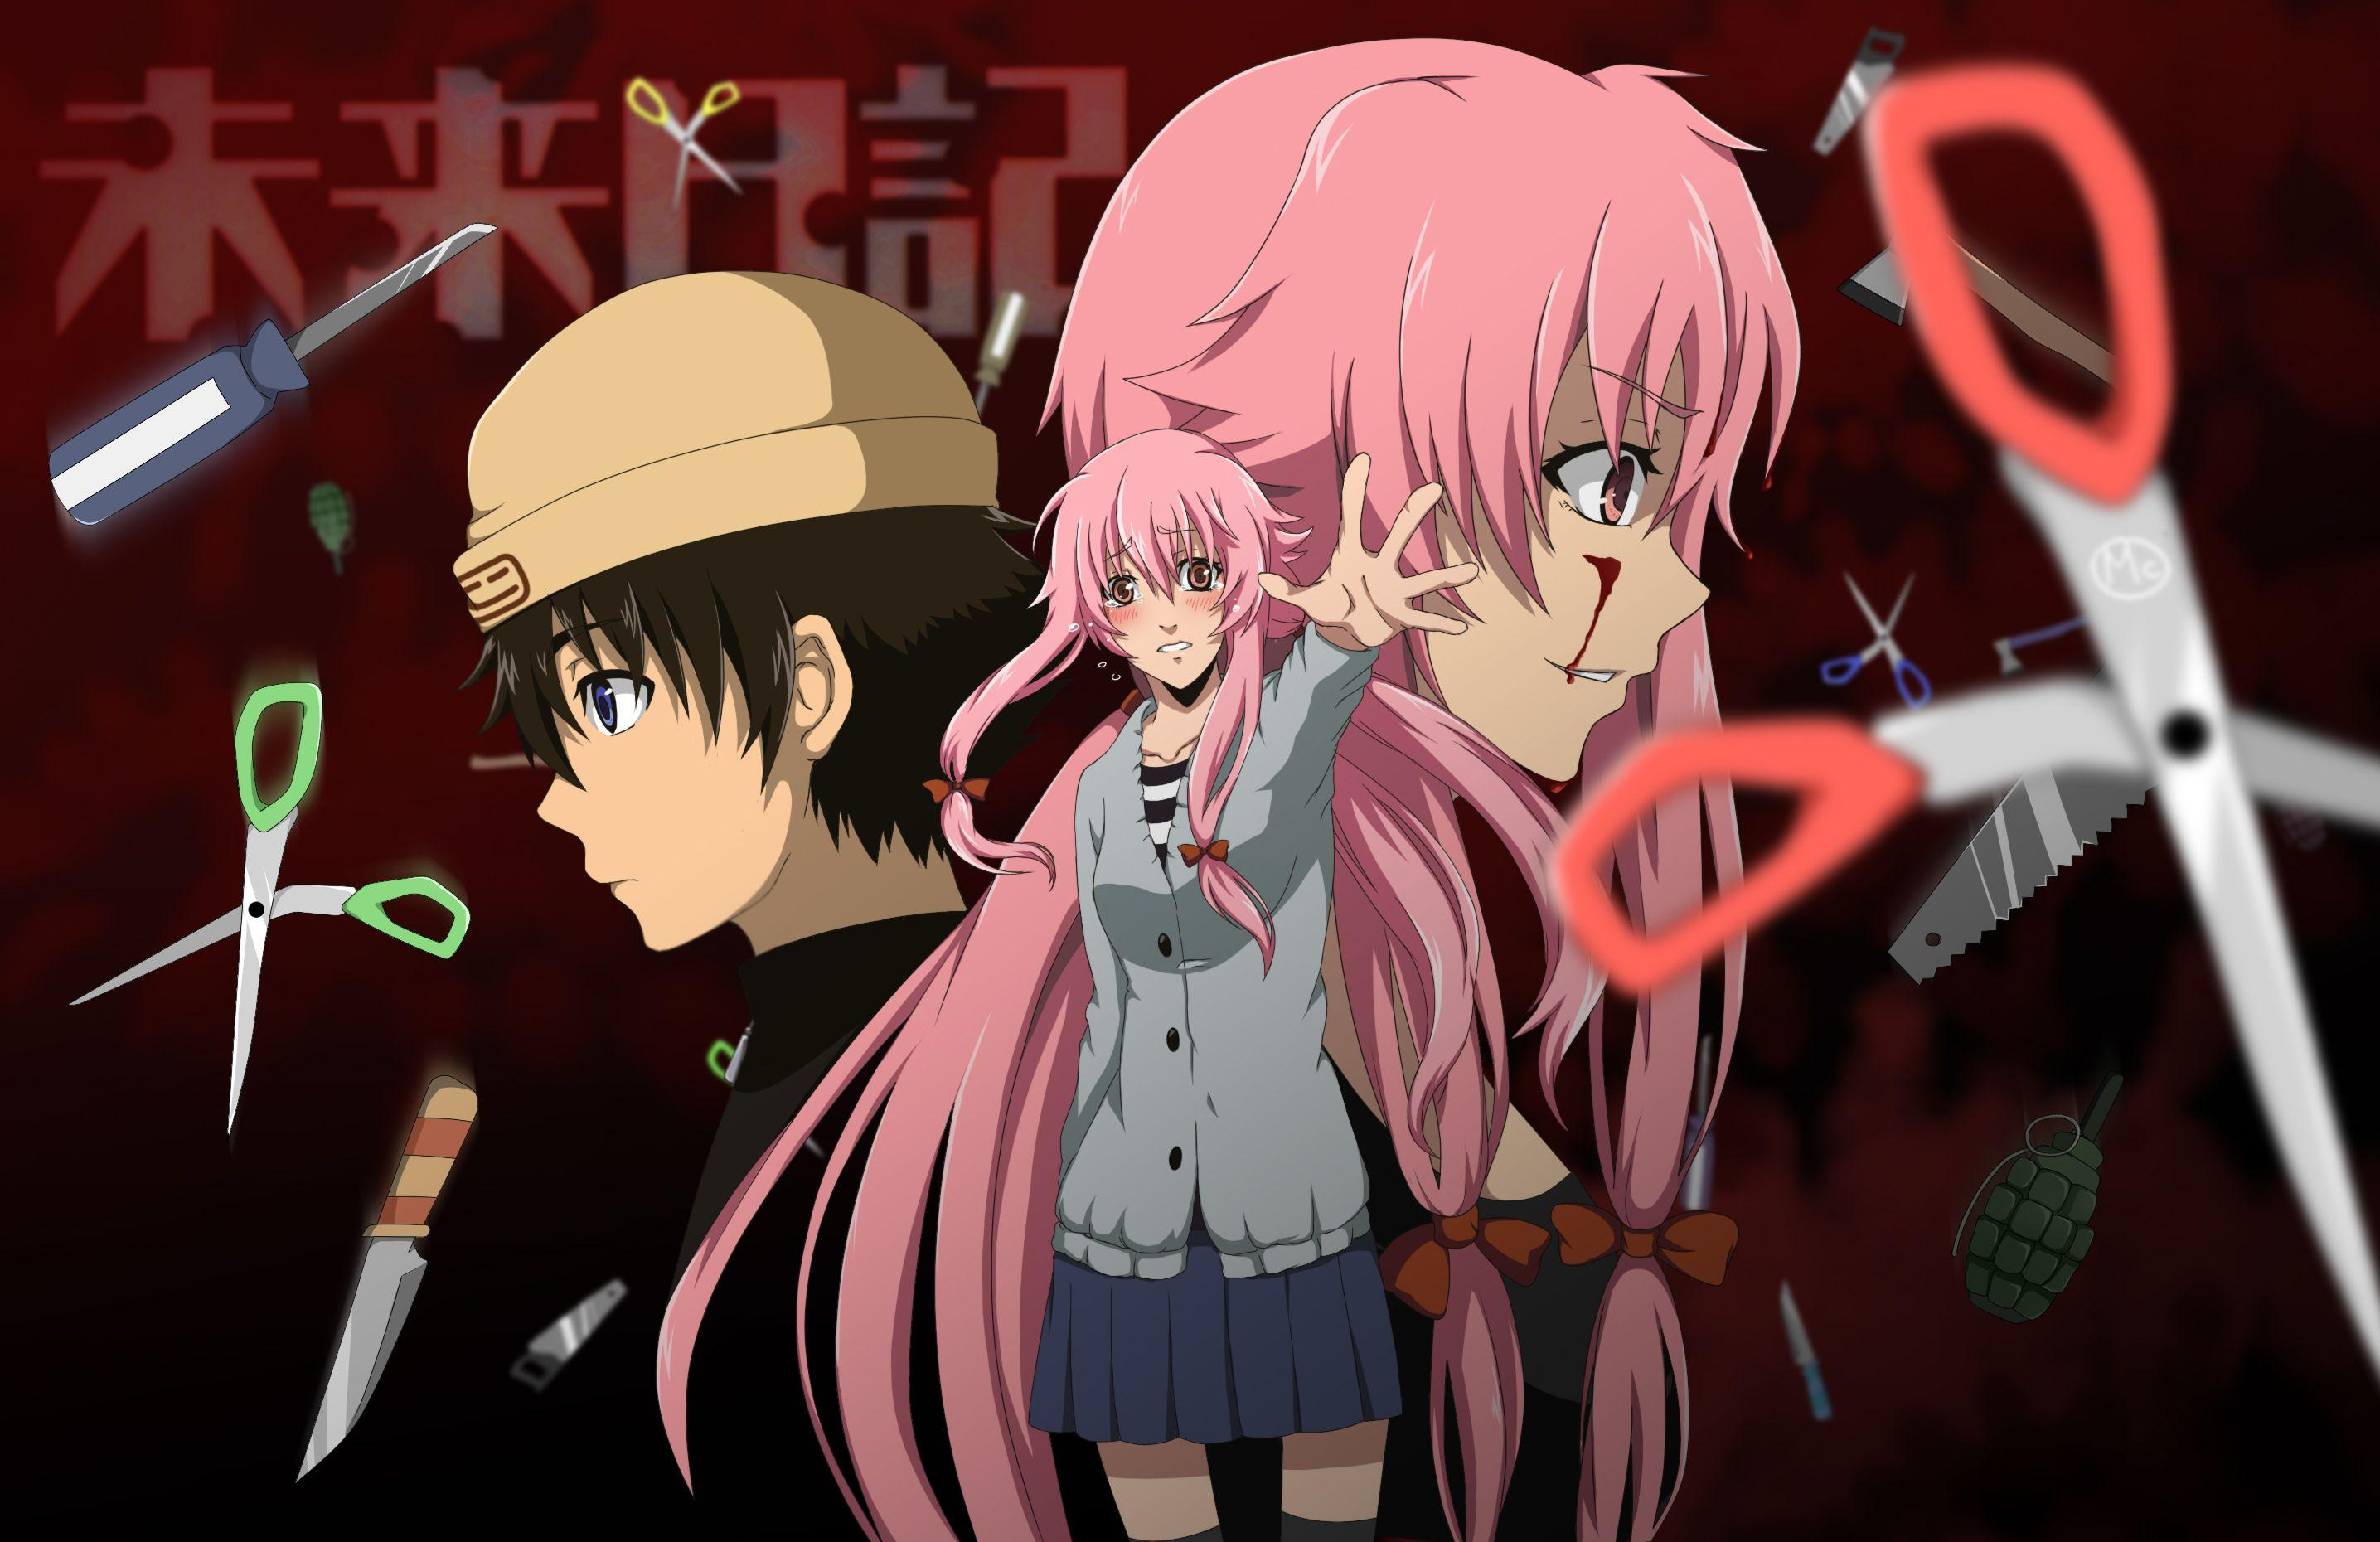 Unduh 93+ Wallpaper Hd Anime Mirai Nikki HD Gratid